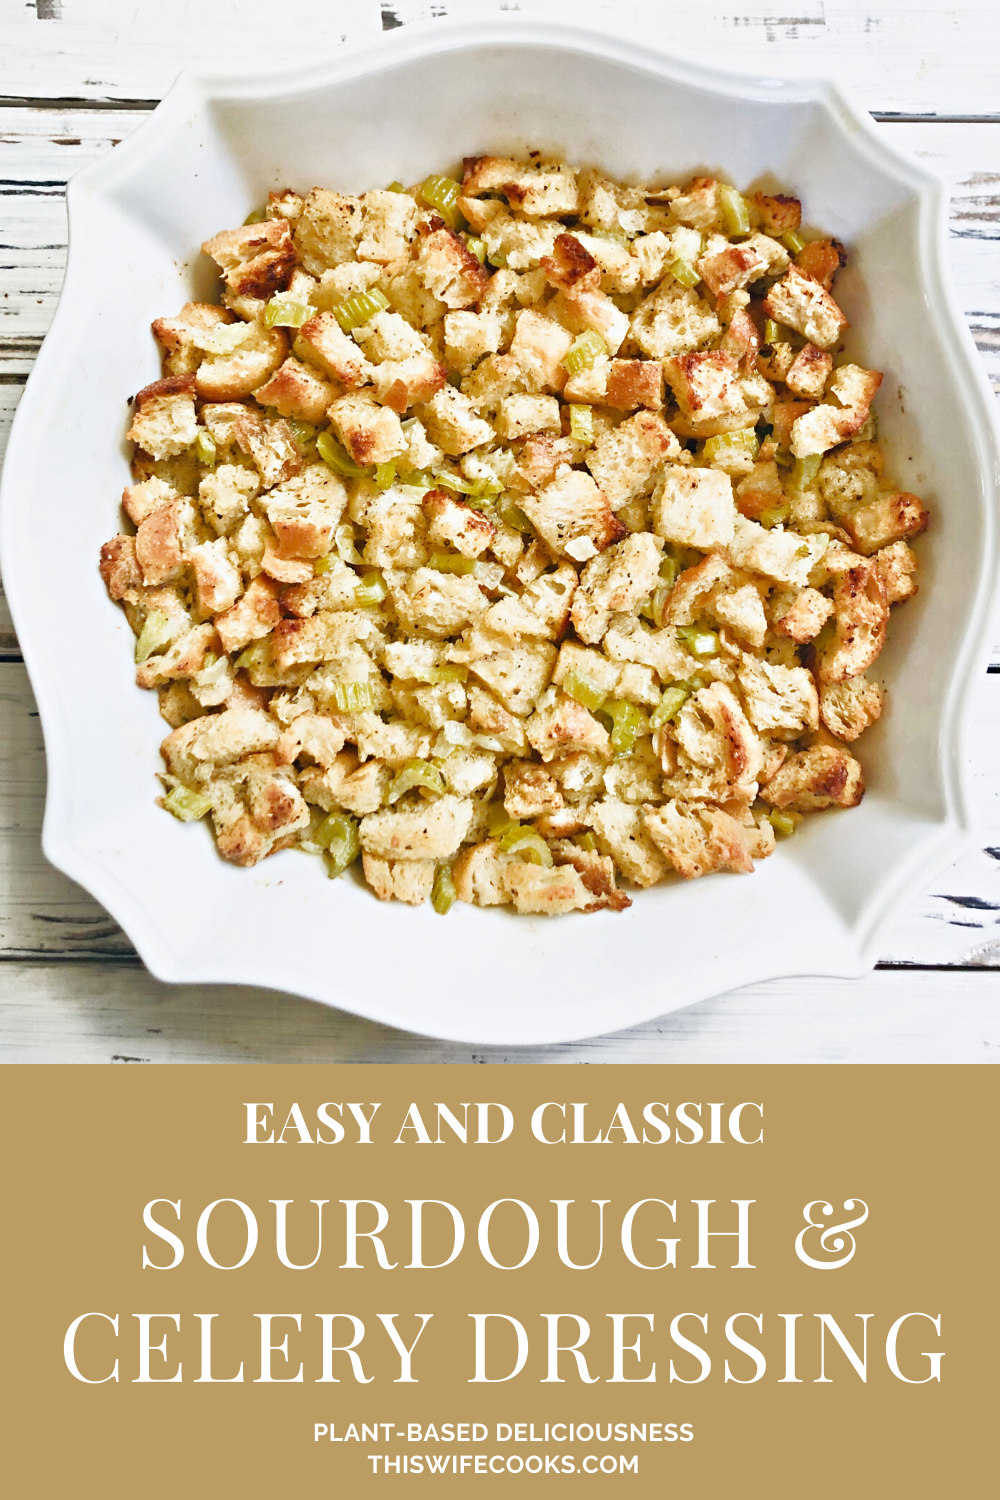 Sourdough and Celery Dressing - A hearty and savory baked casserole dressing that is easy to make and perfect for the holiday table!